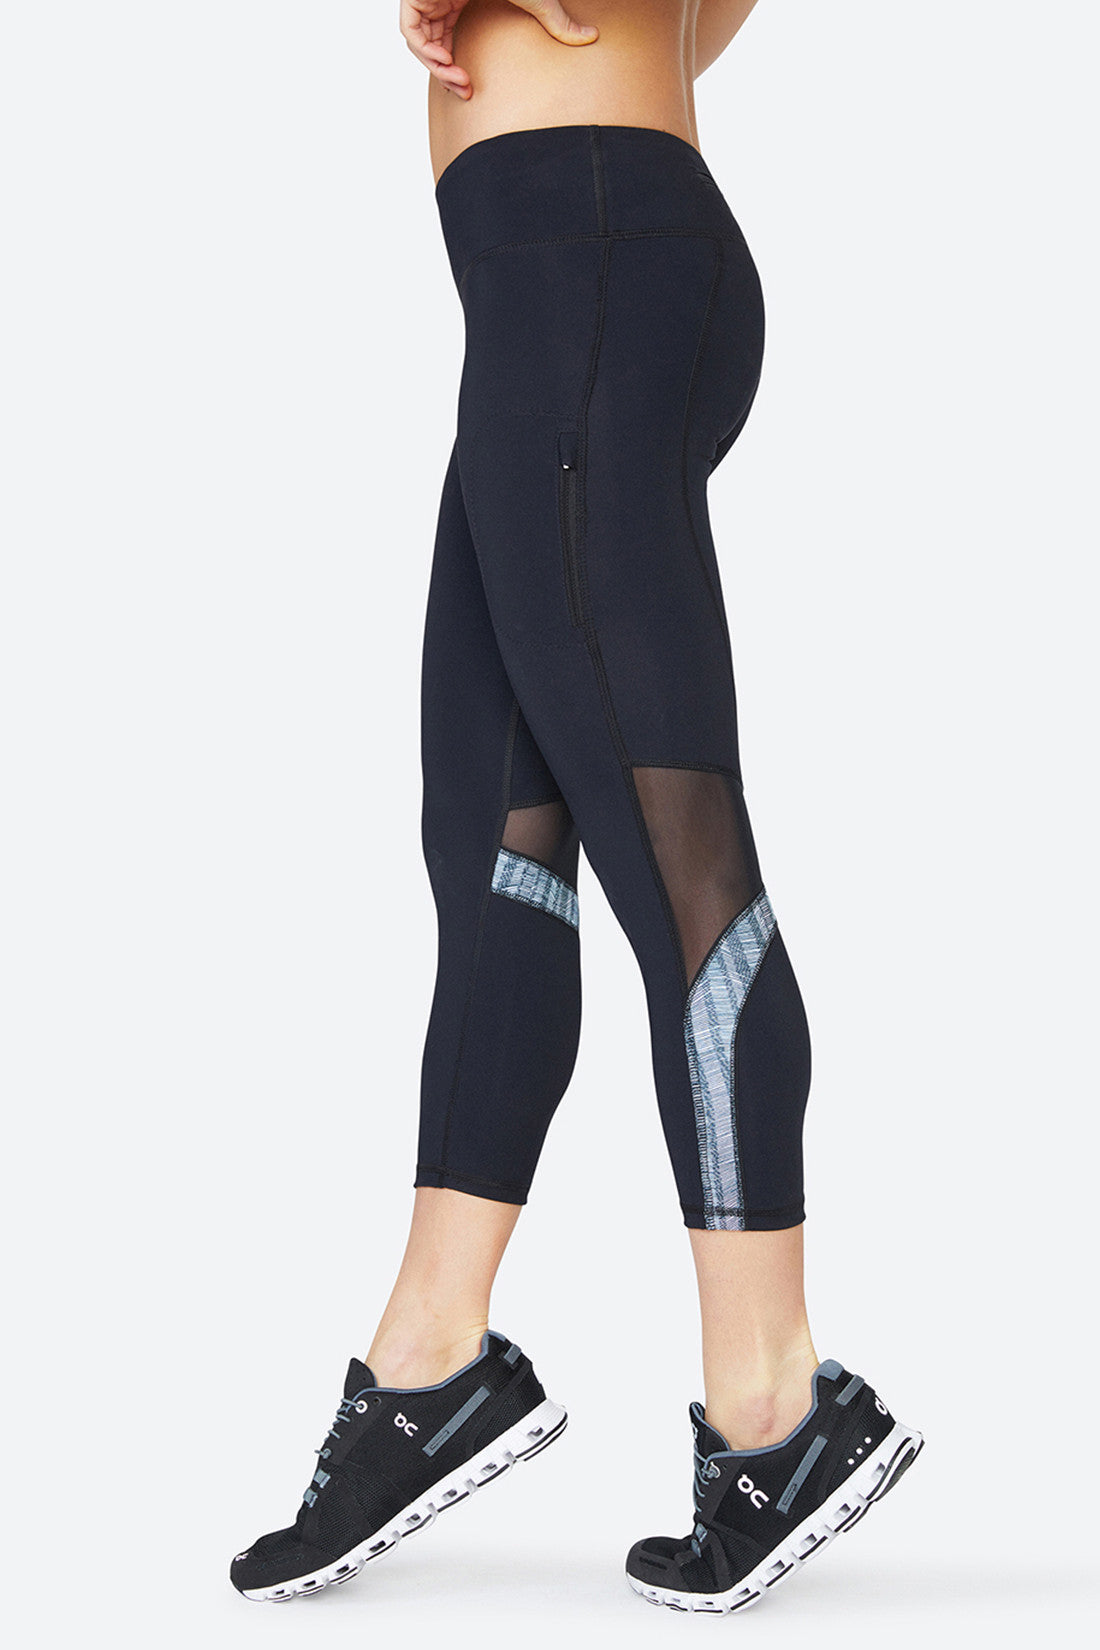 Mesh leggings, breathable, subtle mesh, body hugging, body forming, performance, sweat wicking, Chelsea Tight - Black Mesh